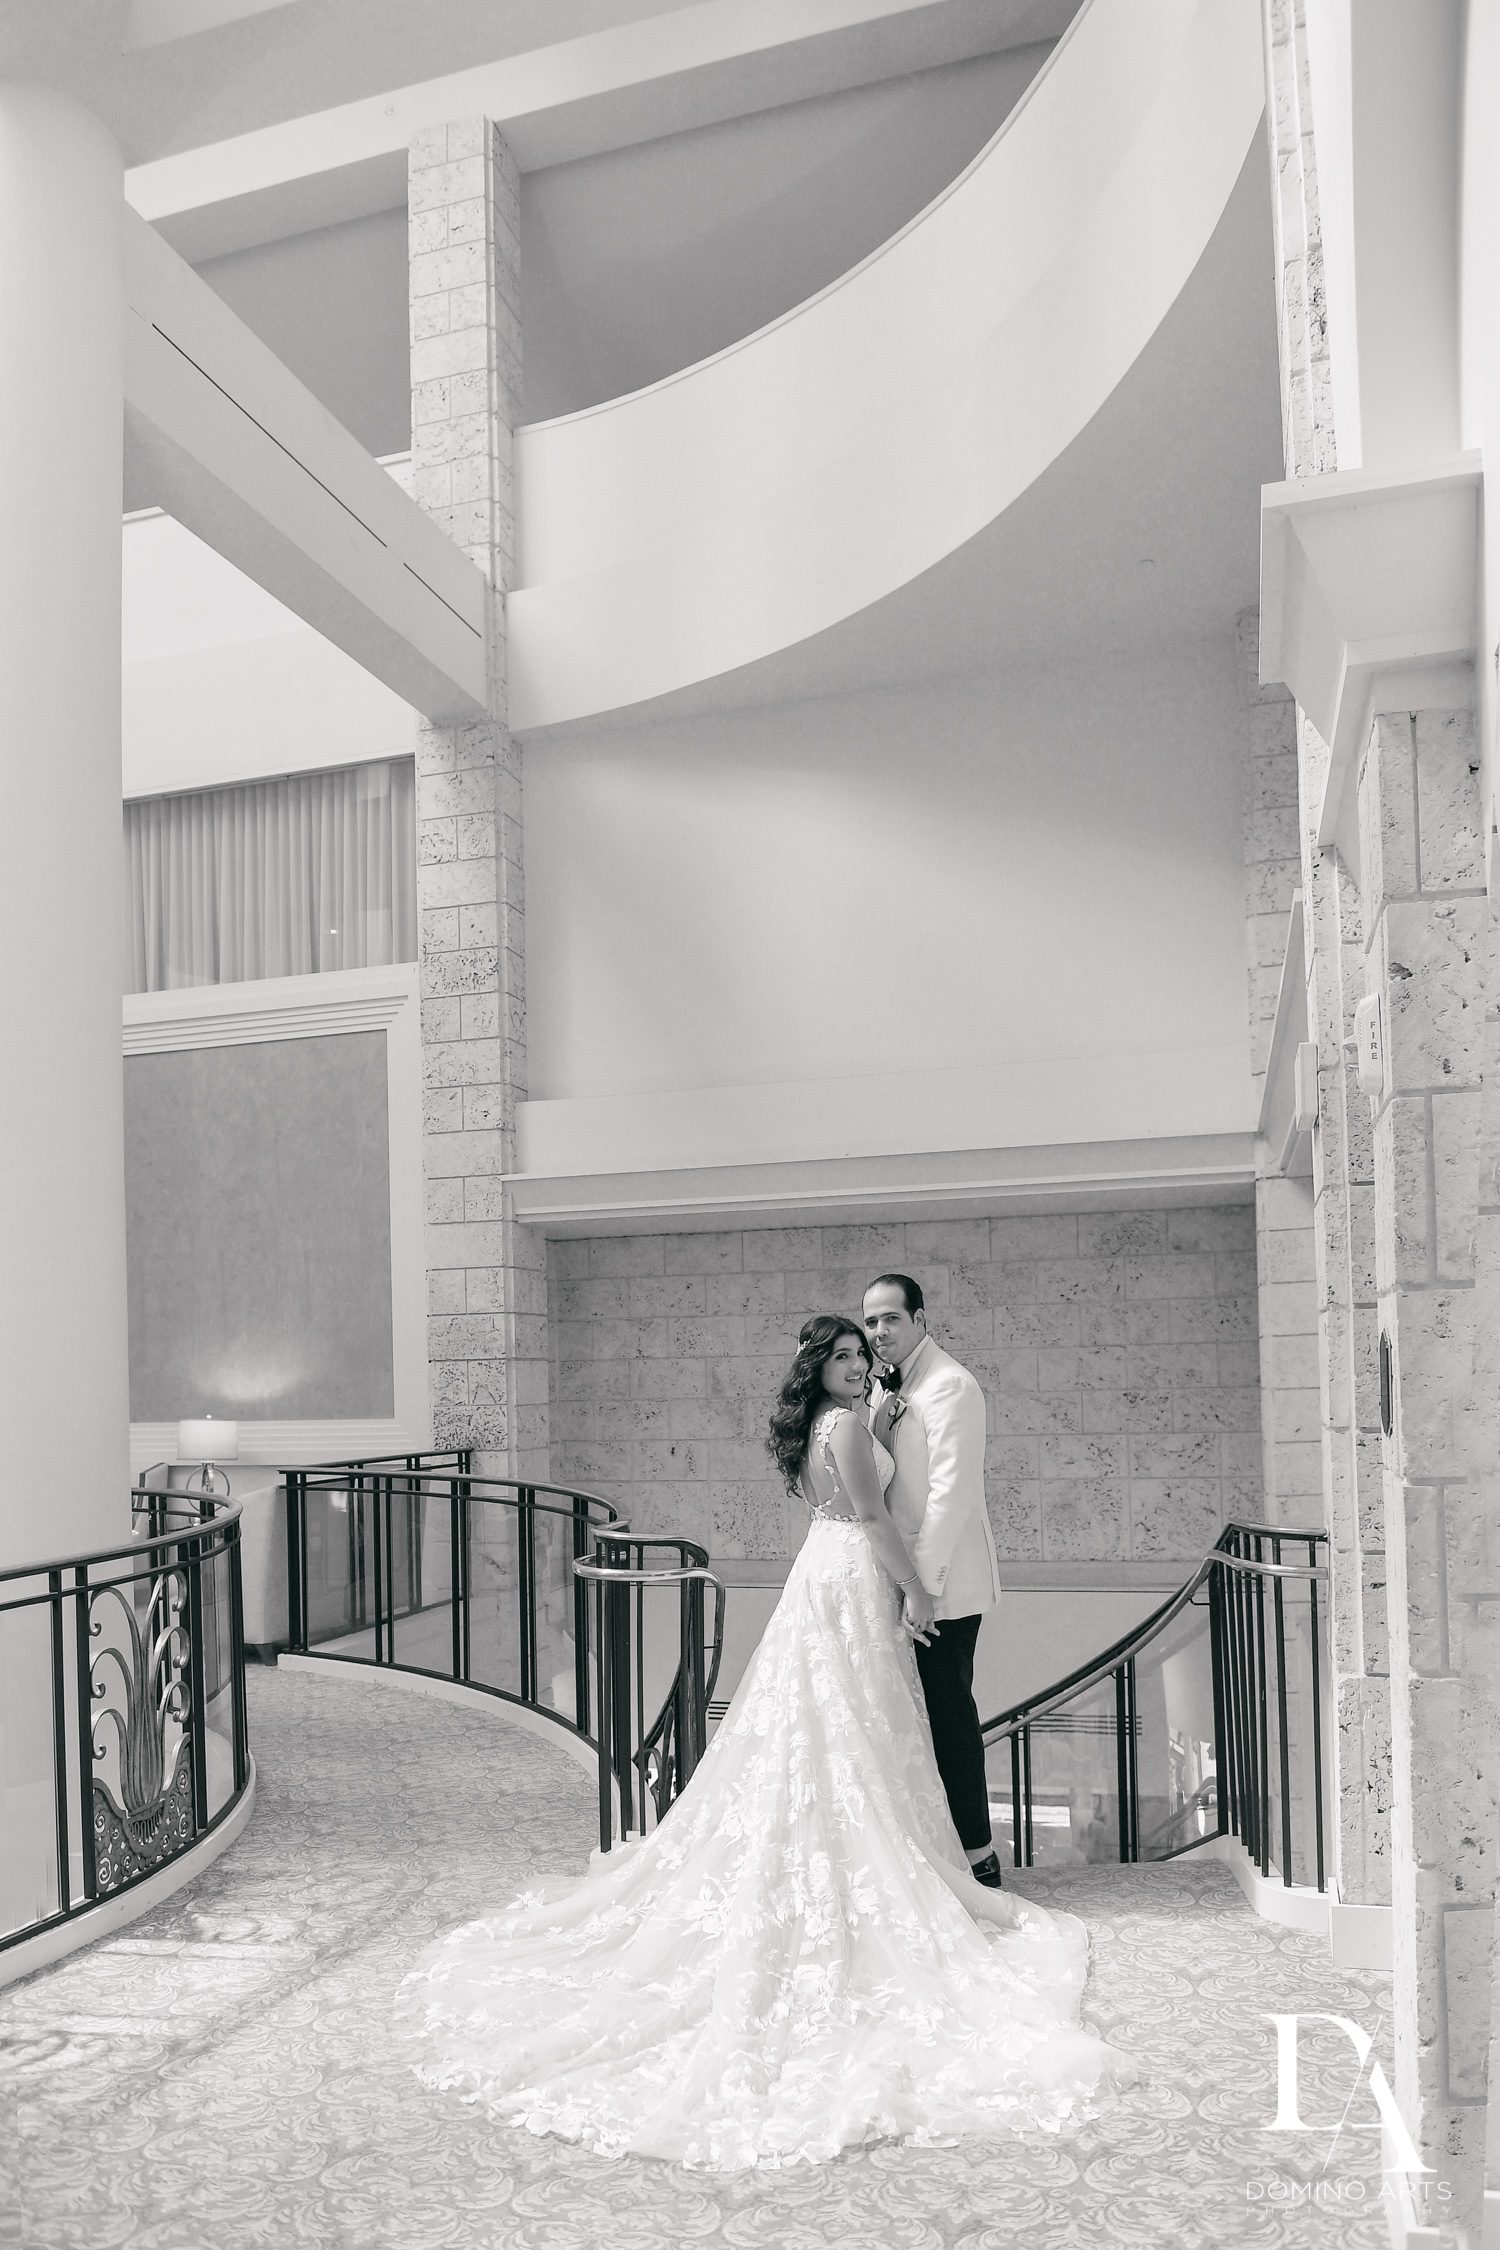 B&W pictures at Elegant Classy Wedding at Trump Doral by Domino Arts Photography